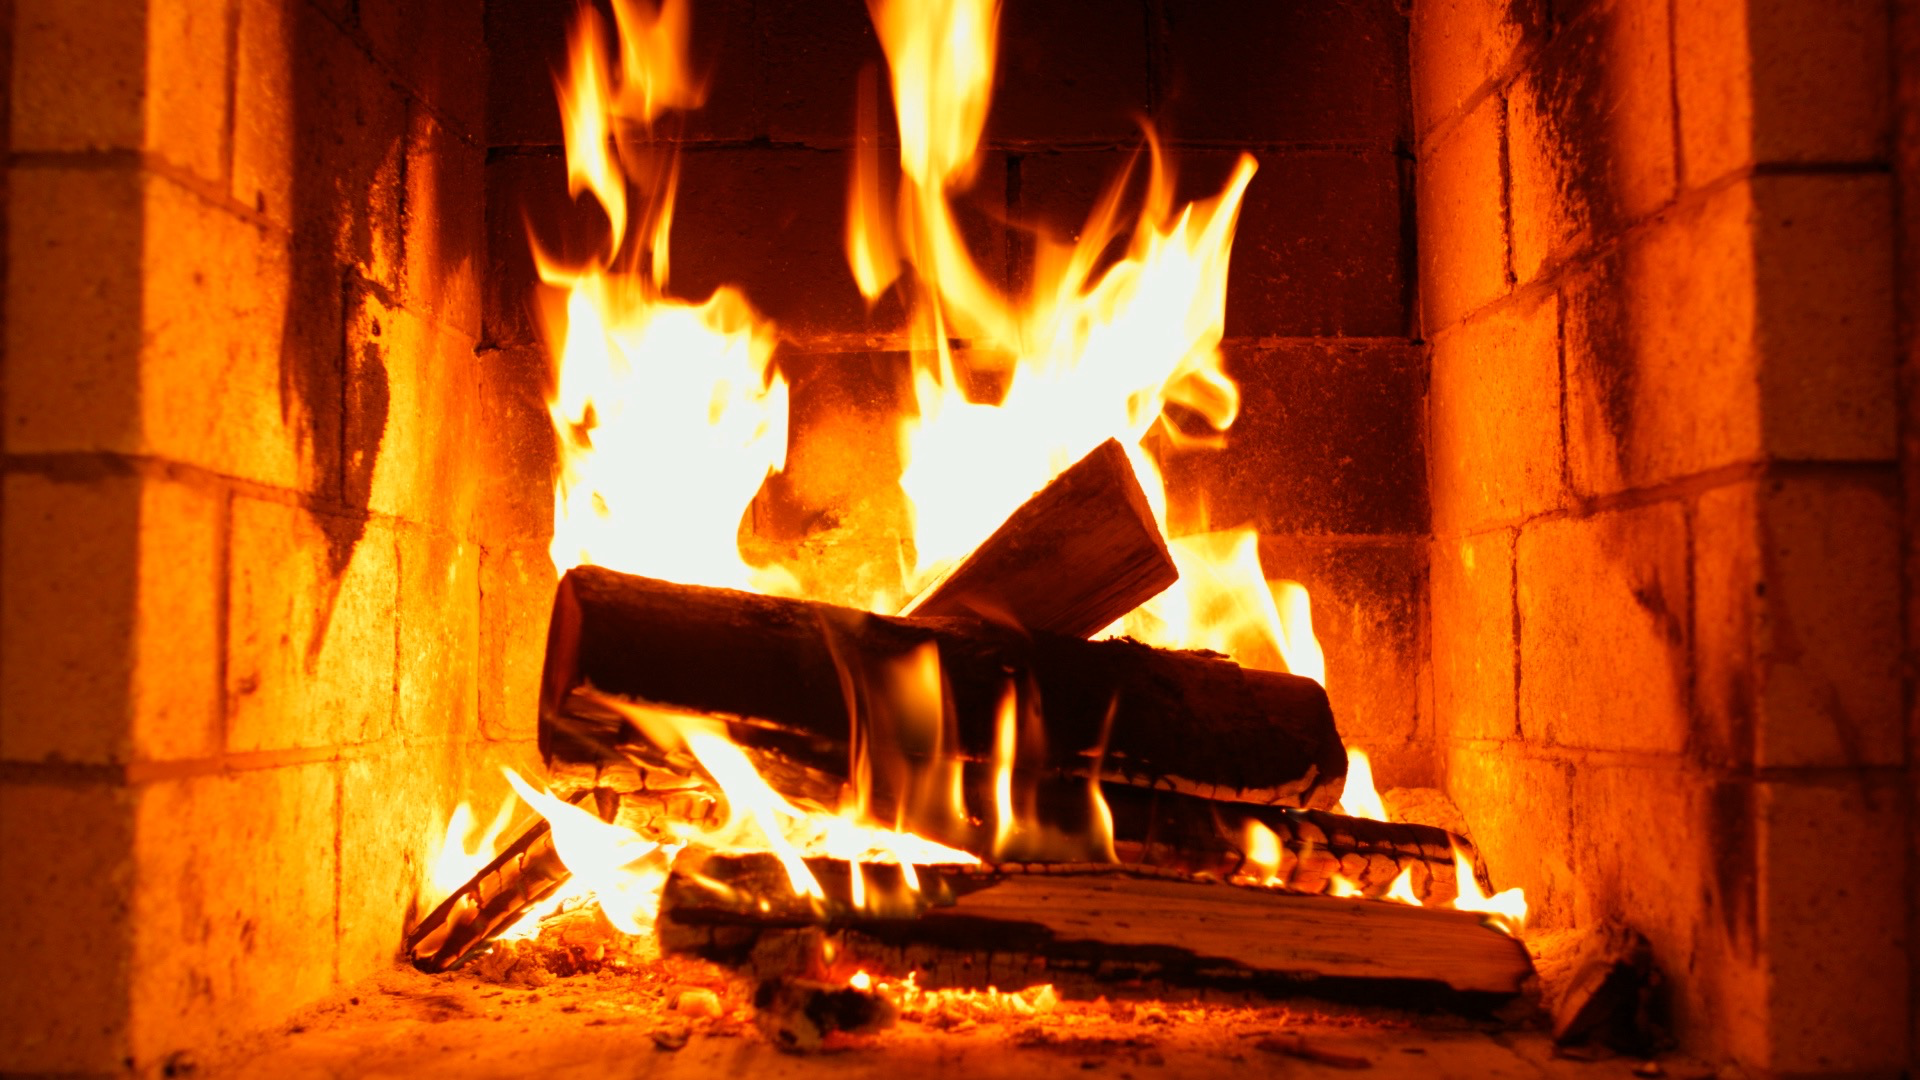 classic Fireplace – relaxing and romantic fire flames screenshot 2